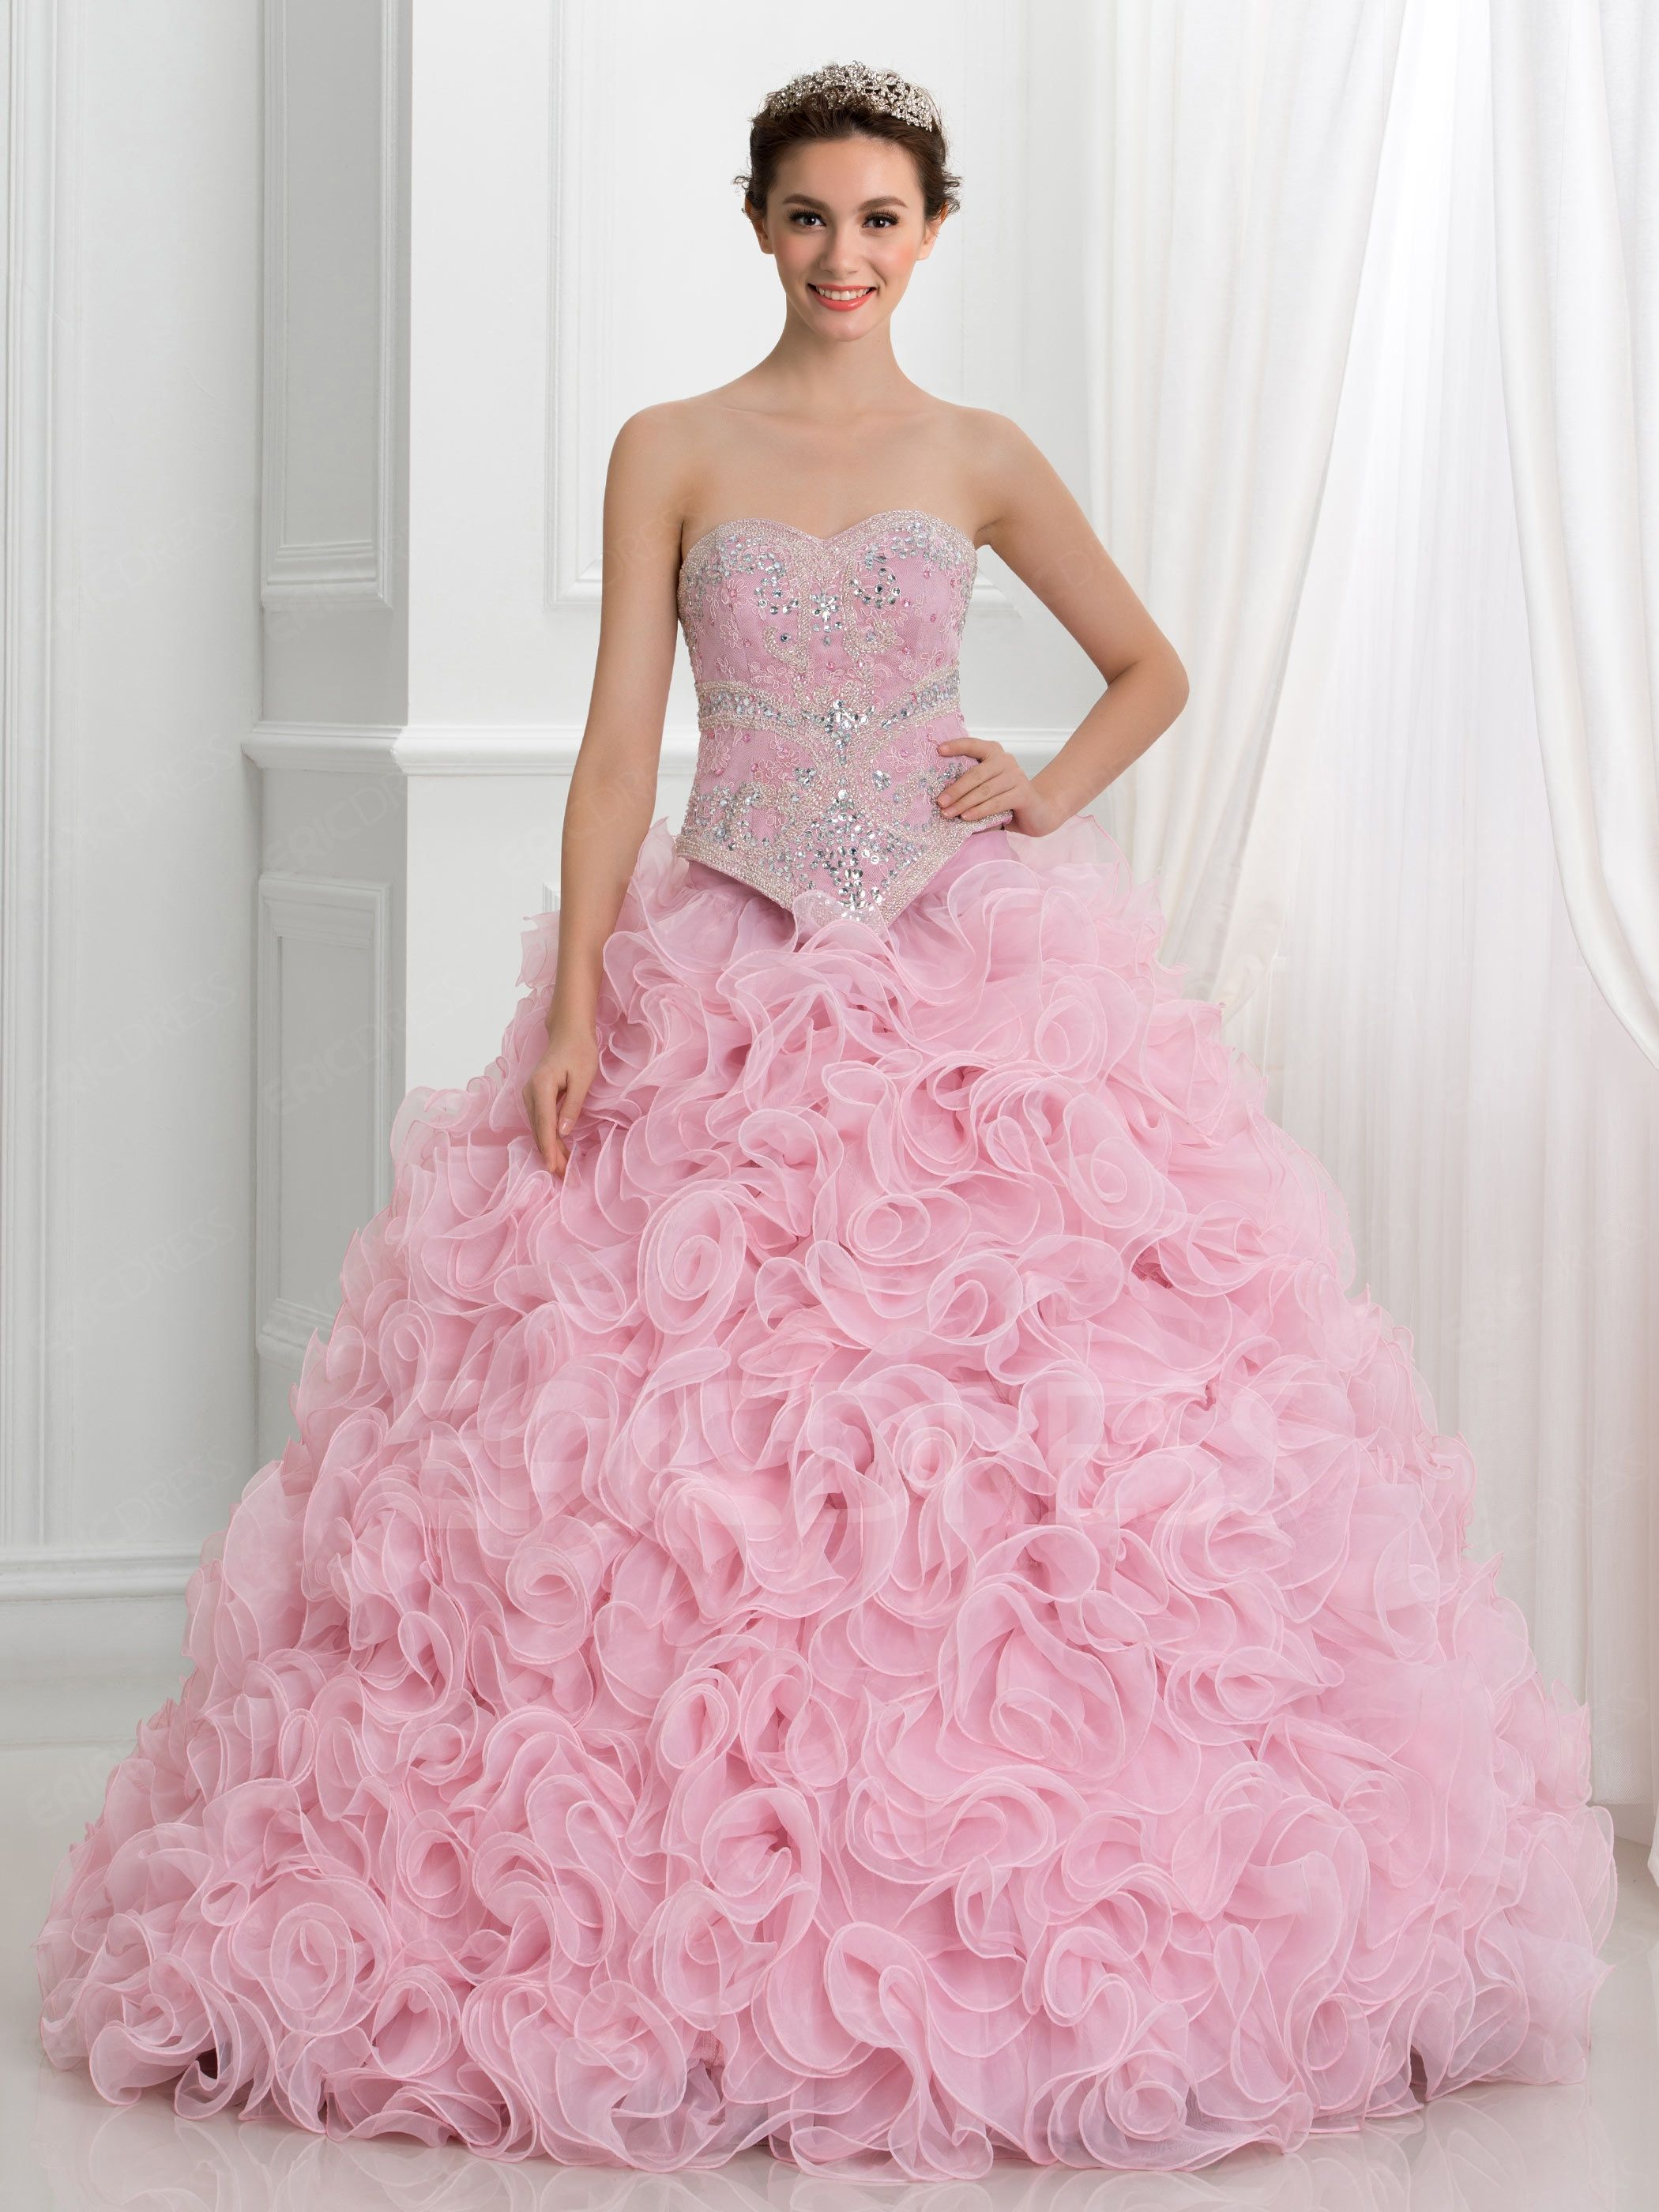 e828a097e4 ericdress.com offers high quality Ericdress Sweetheart Beading Cascading  Ruffles Lace Quinceanera Dress Quinceanera Dresses unit price of   296.99.